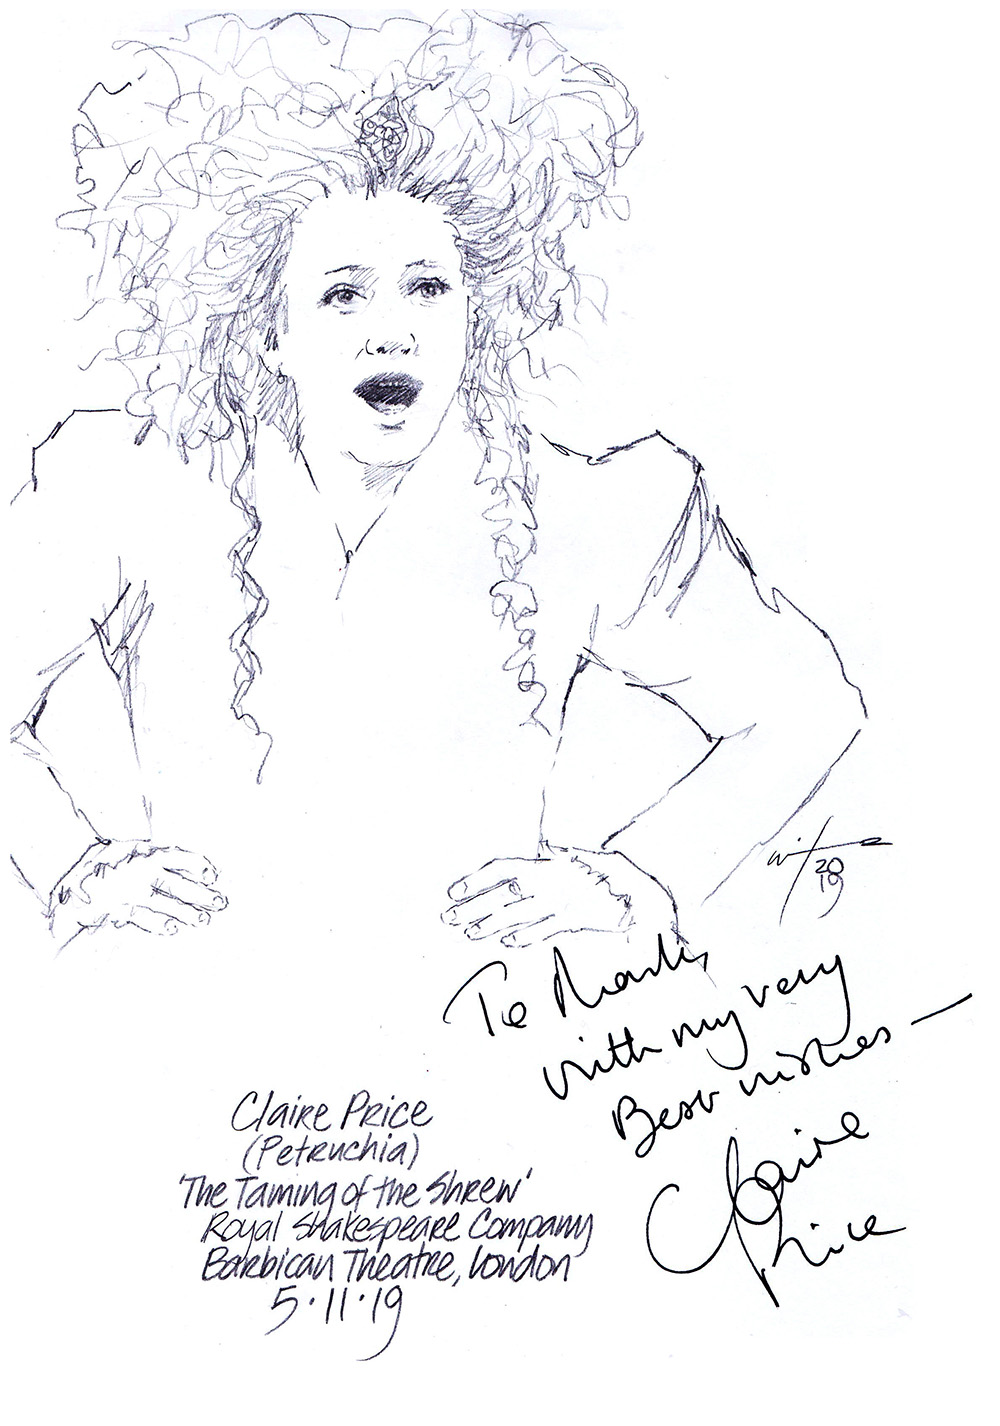 Autographed drawing of Claire Price as Petruchio in The Taming of the Shrew